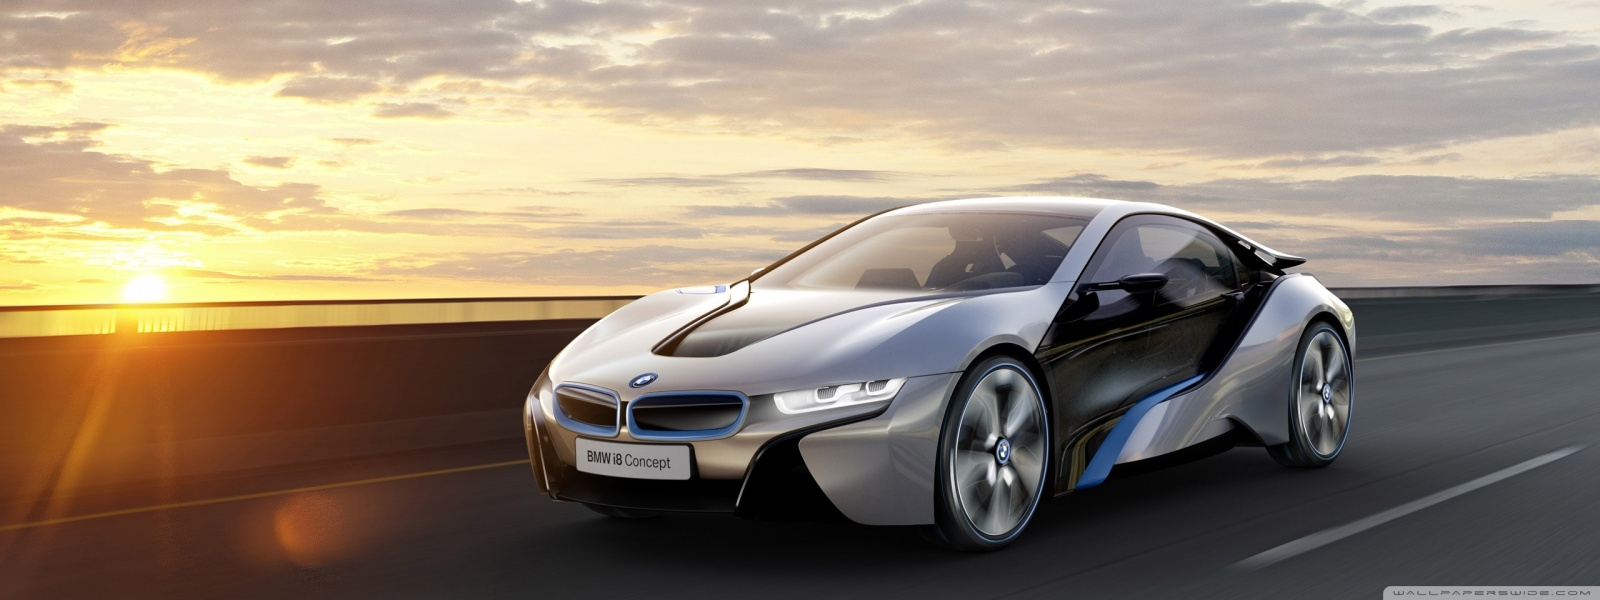 1600x600 - BMW i3 Concept Wallpapers 1